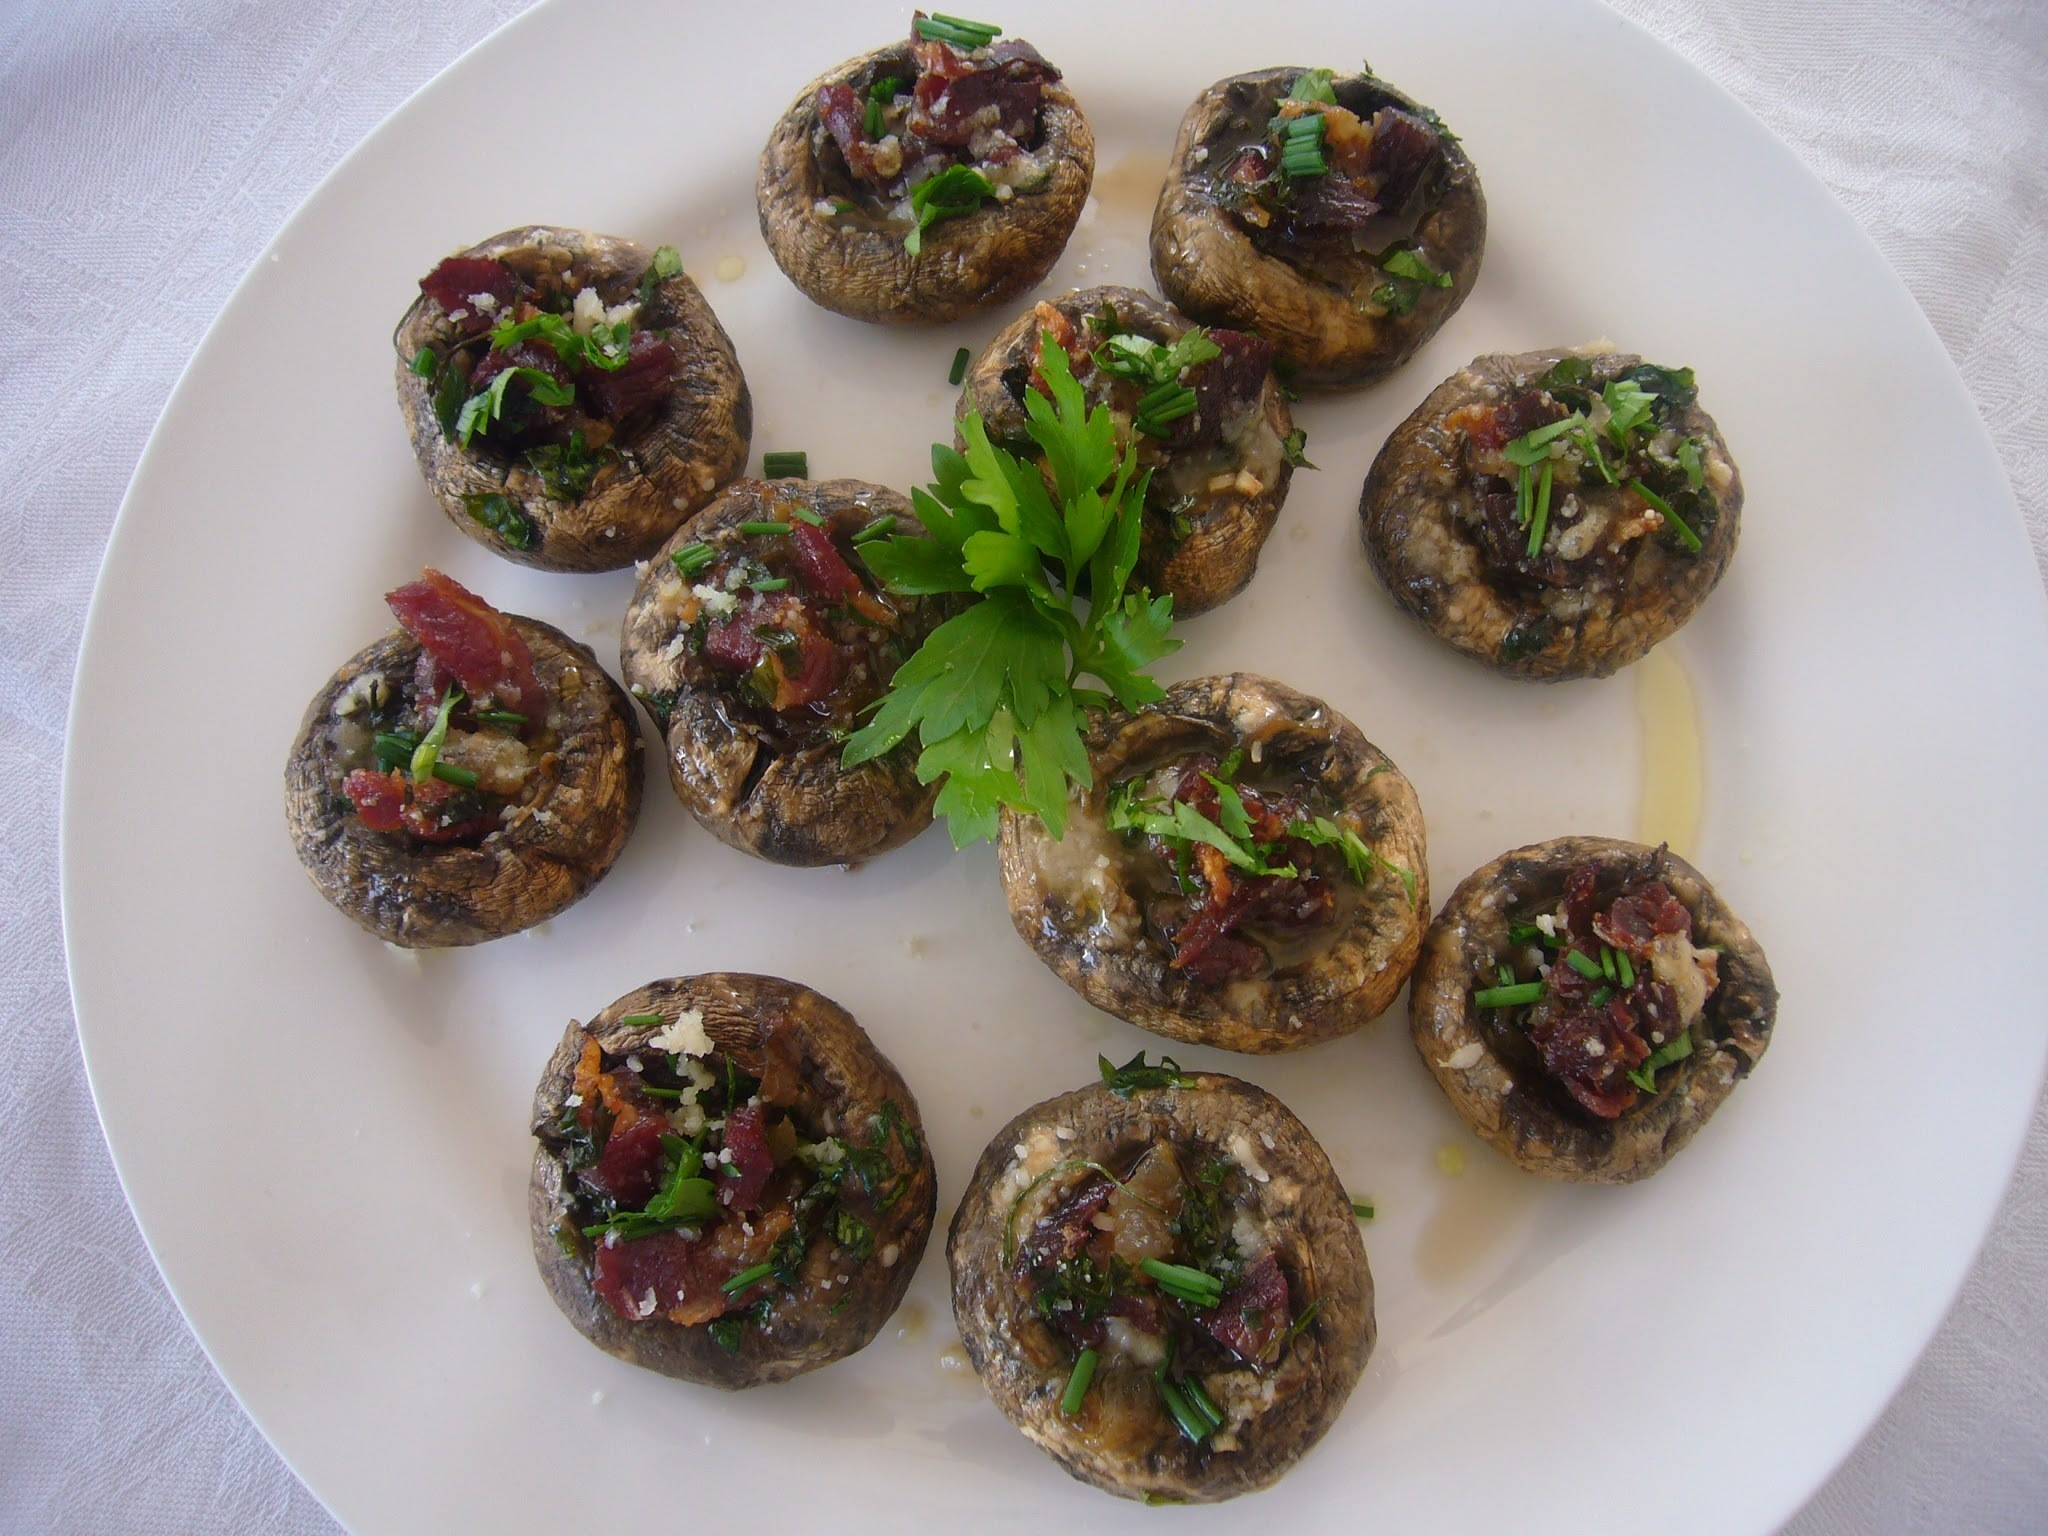 XAMPINYONS FARCITS - STUFFED MUSHROOMS